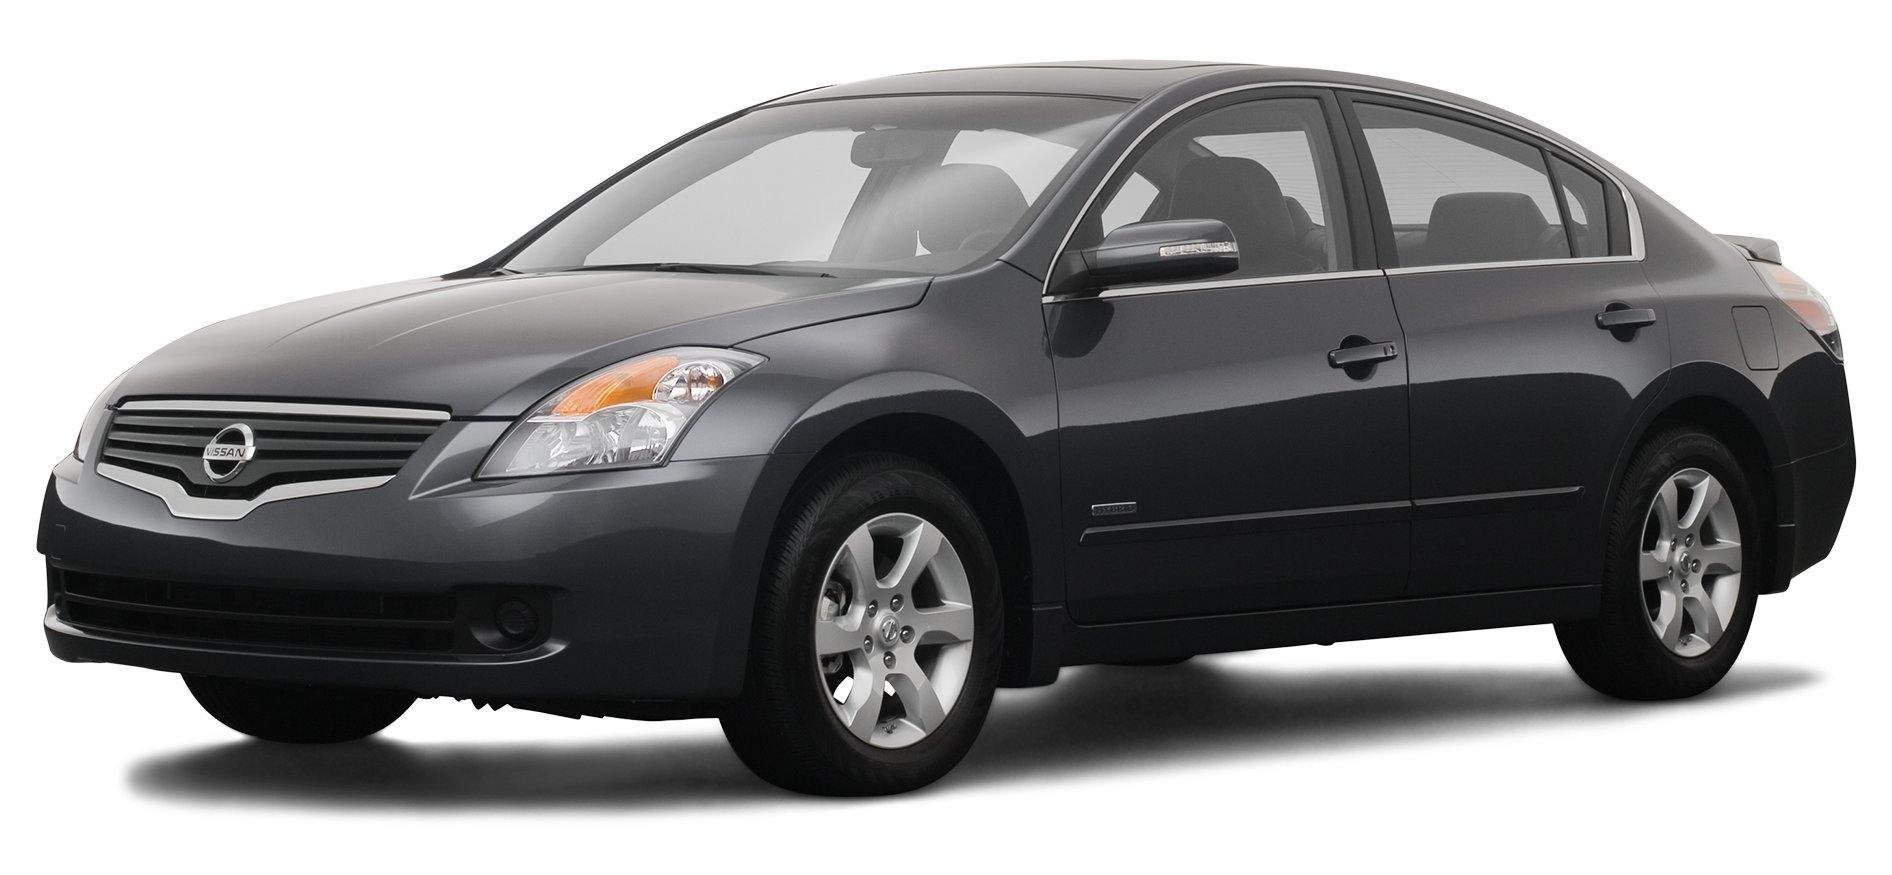 Box Diagram On 93 Nissan Altima Engine Diagram Get Free Image About